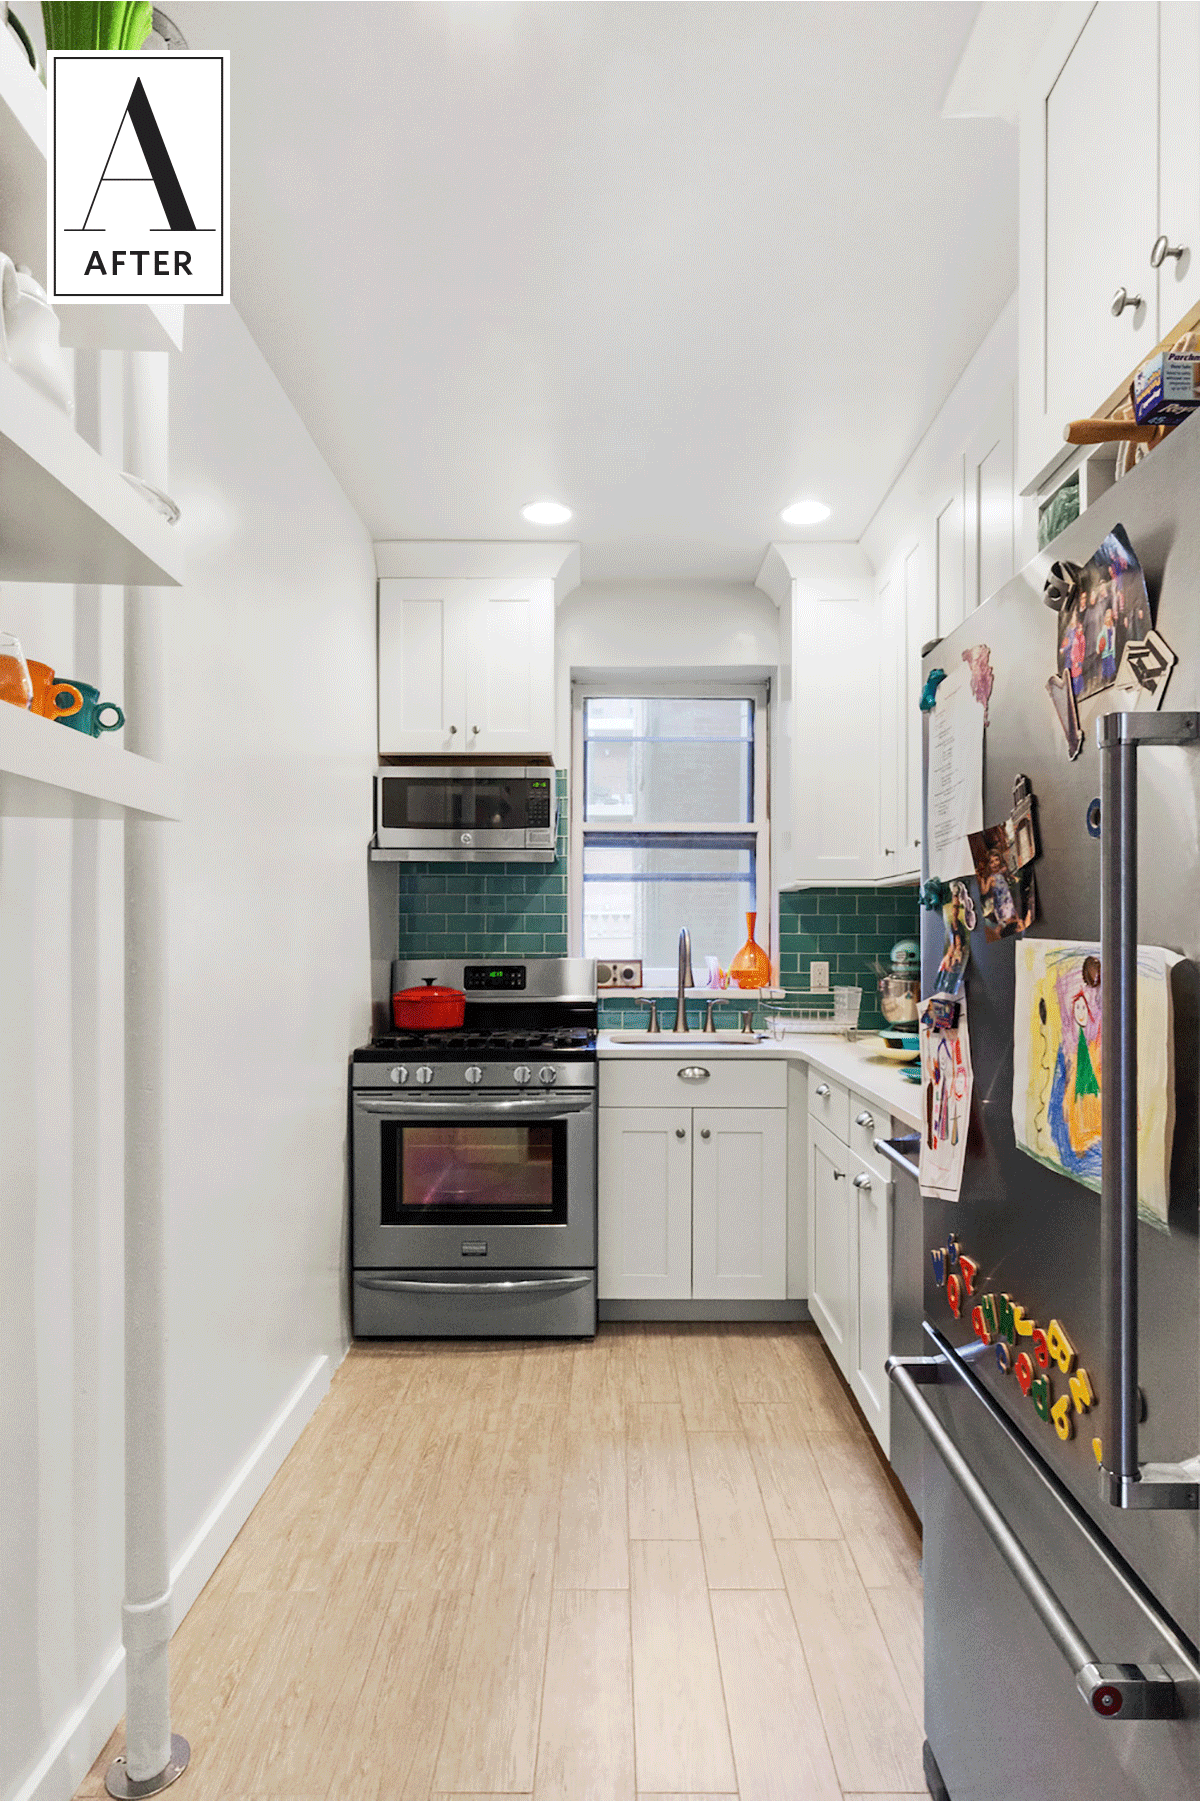 Before & After A Colorful Update For A Cluttered Kitchen  Kitchens Glamorous Brooklyn Kitchen Design Decorating Design